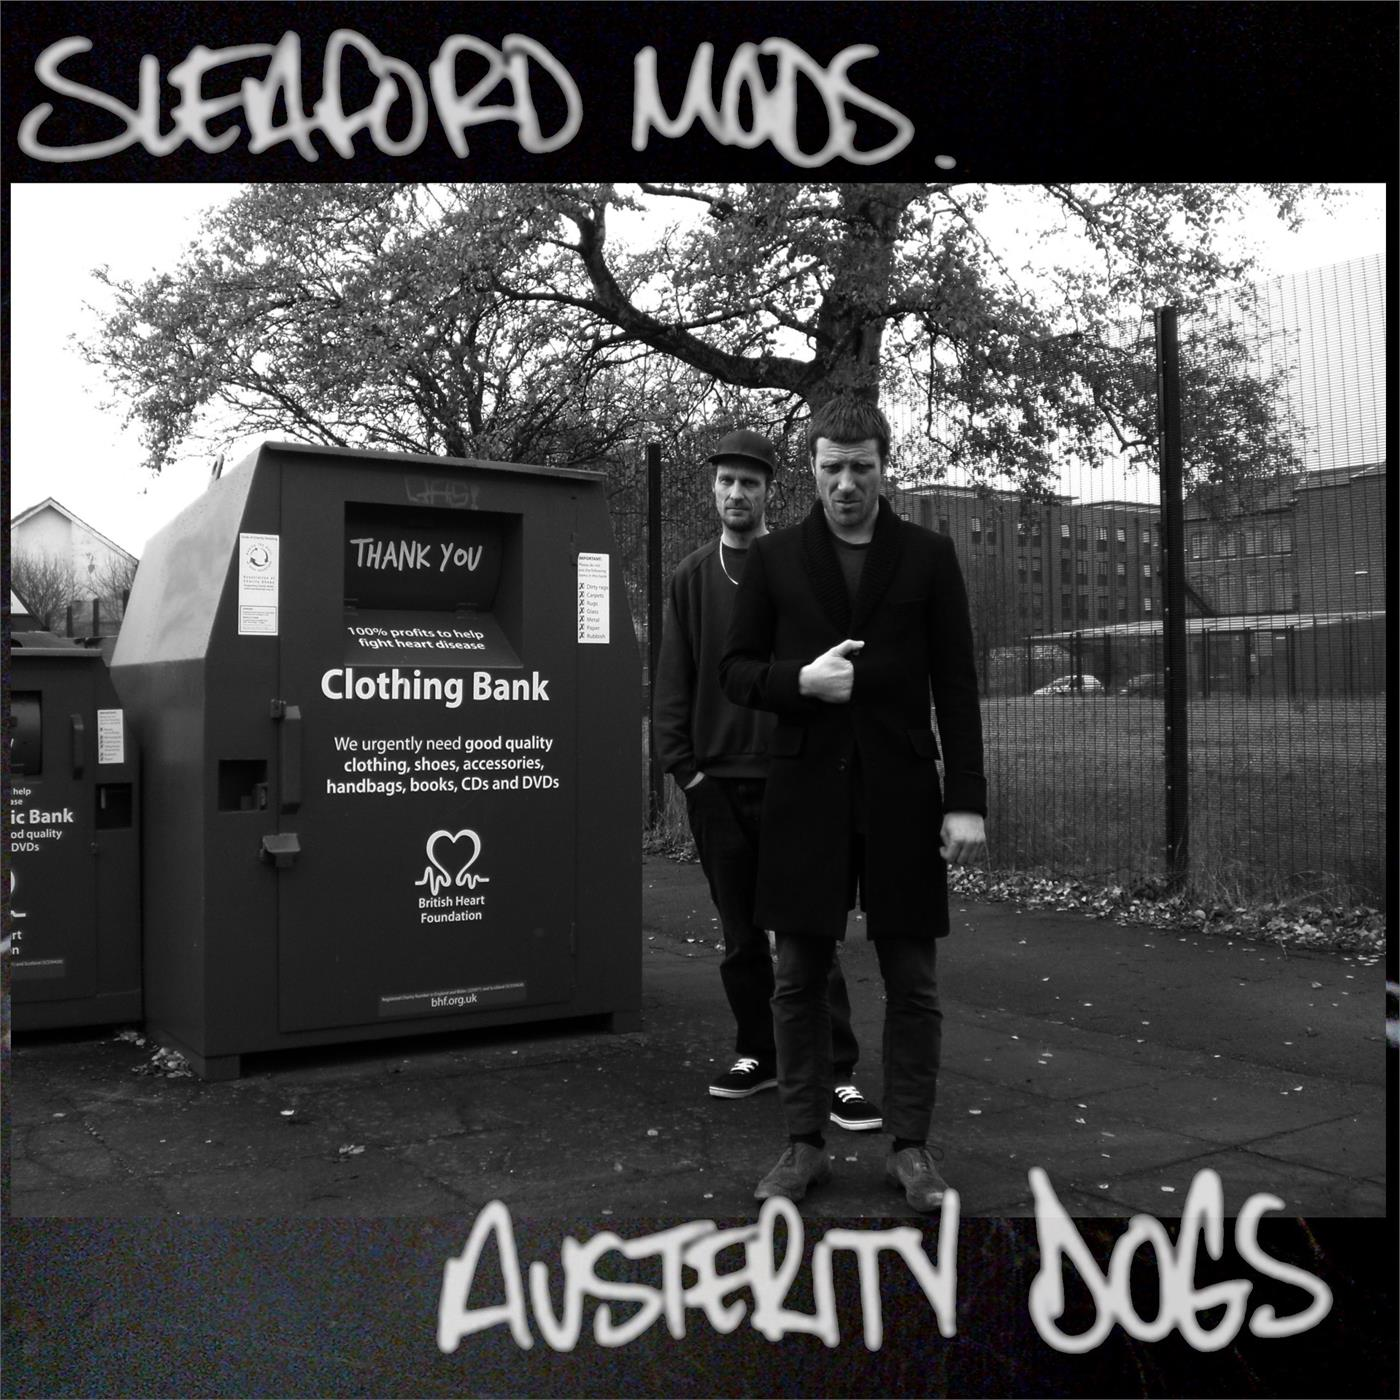 Sleaford Mods - Austerity Dogs [LP]